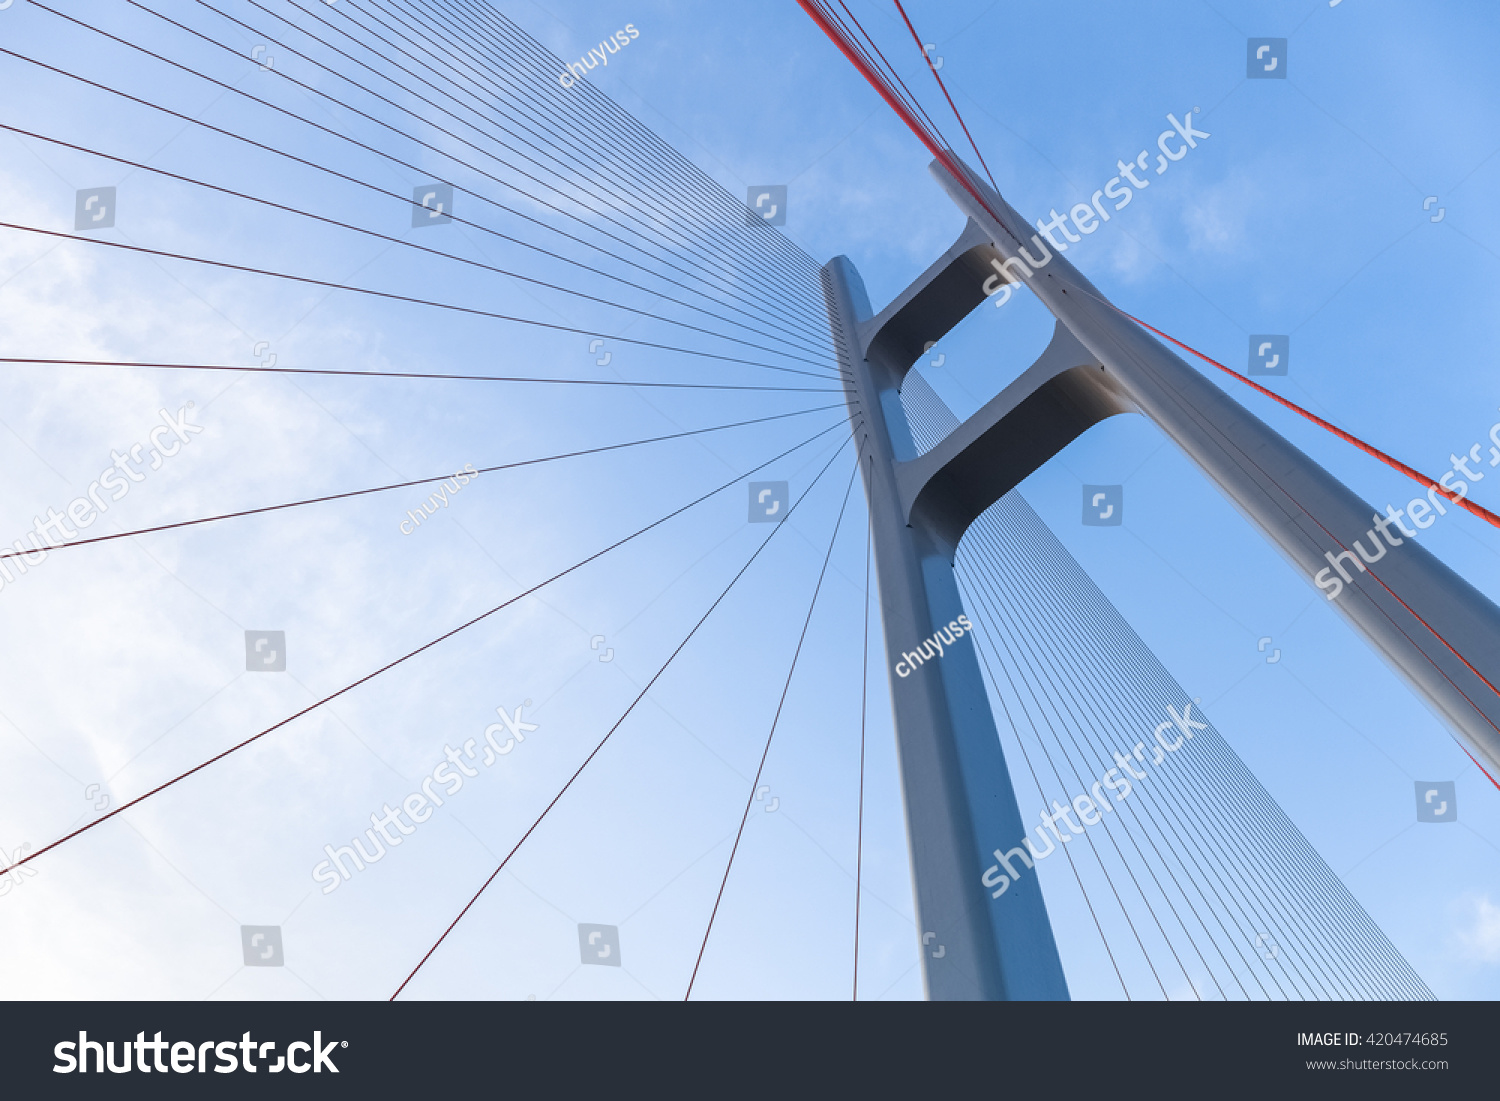 cable stayed bridge closeup against blue sky , upward view #420474685